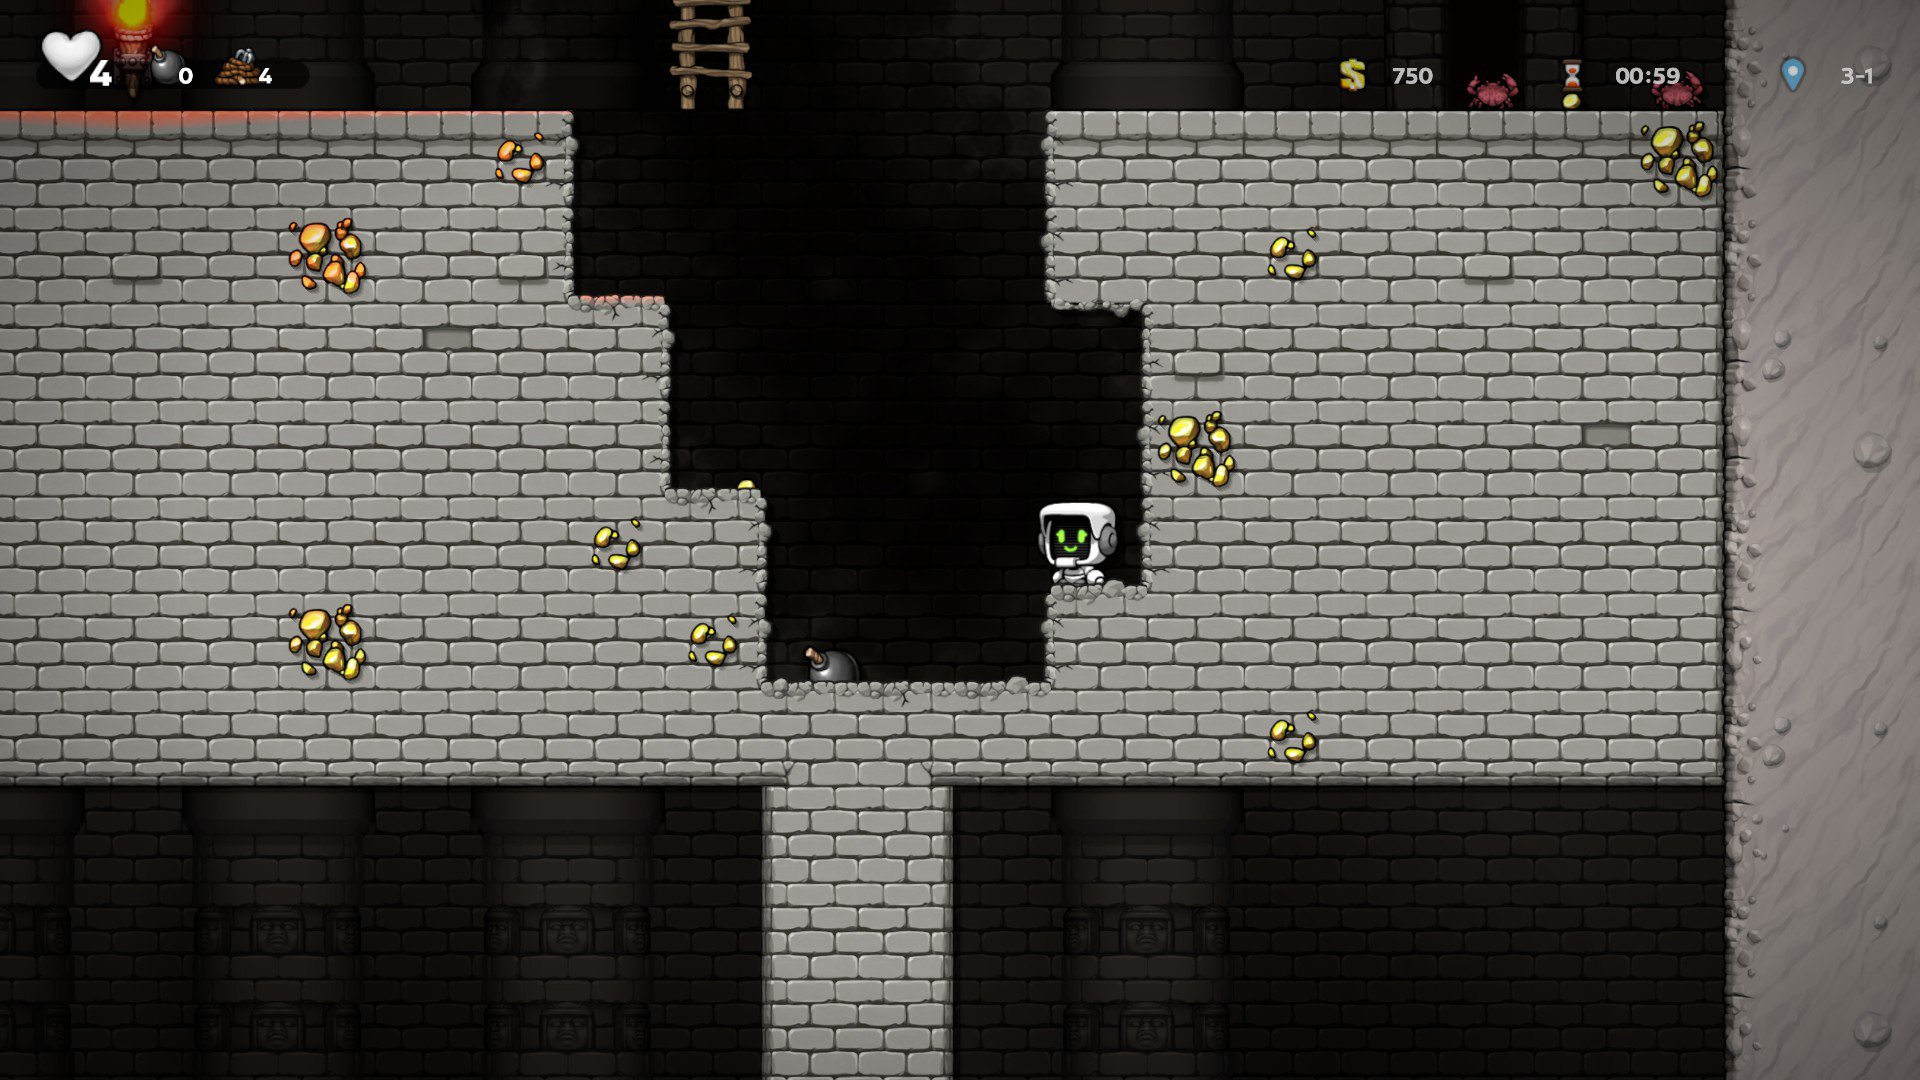 How to access the Temple of Anubis in Spelunky 2